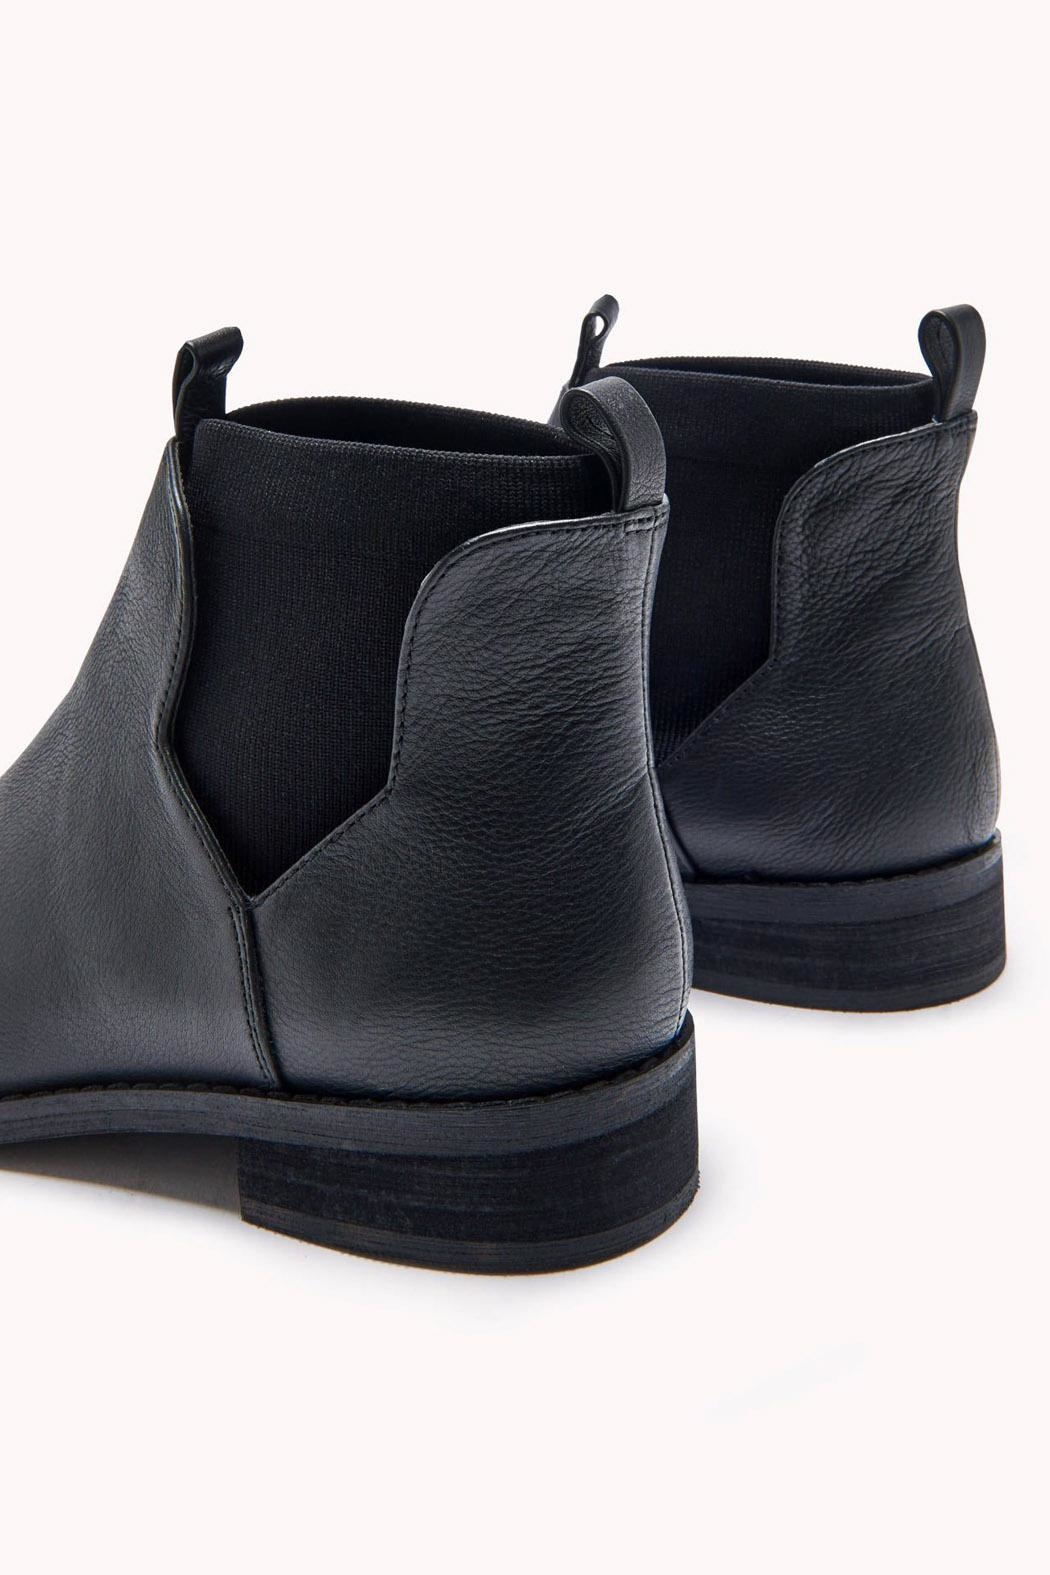 Miista Maxine Chelsea Boots - Side Cropped Image